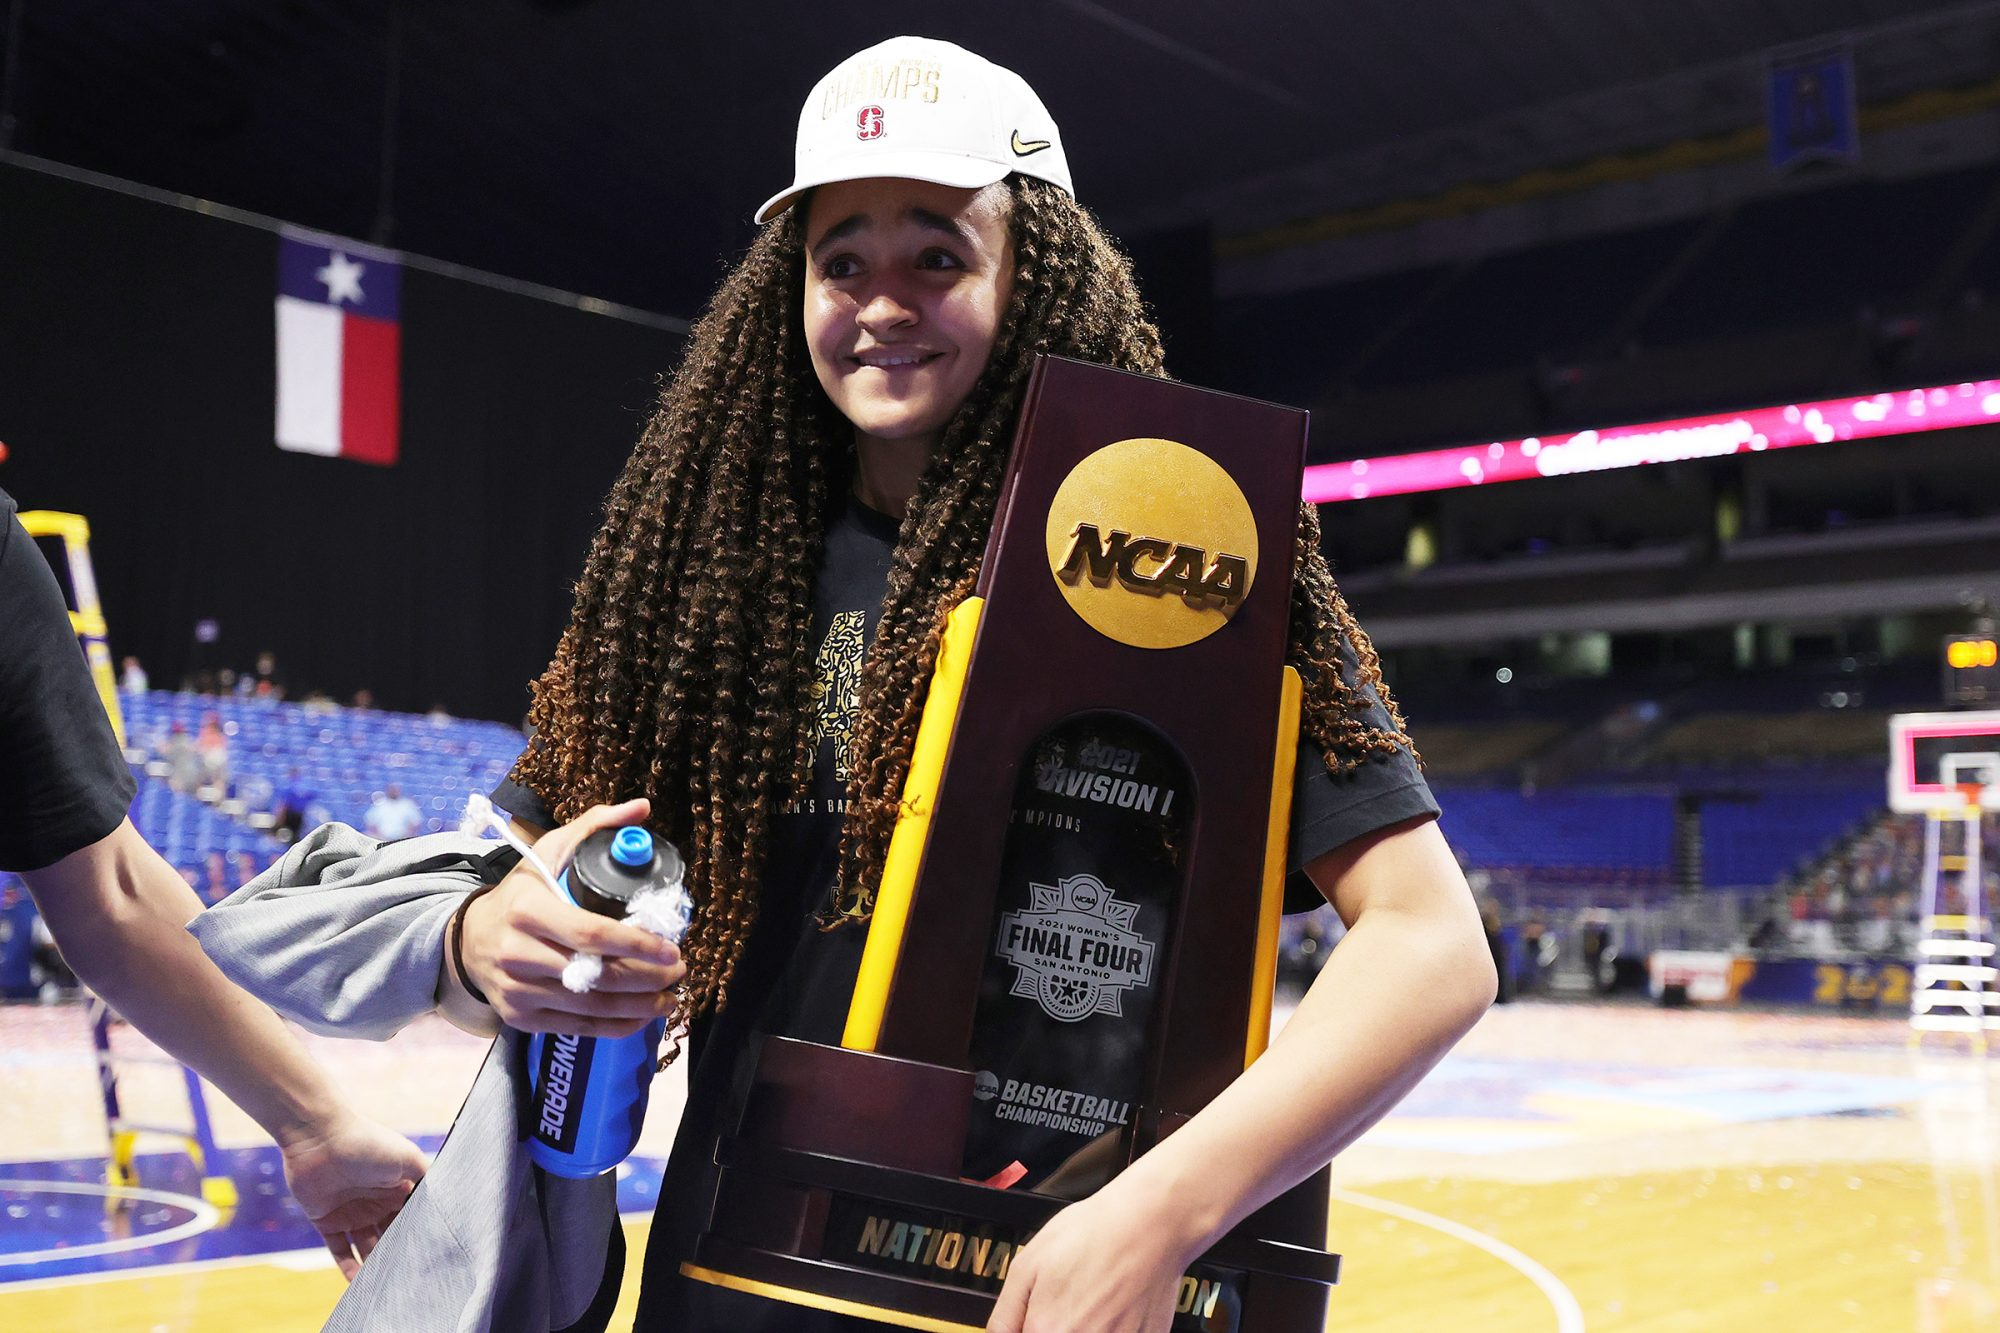 Haley Jones #30 of the Stanford Cardinal holds the trophy after the team's win against the Arizona Wildcats in the National Championship game of the 2021 NCAA Women's Basketball Tournament at the Alamodome on April 04, 2021 in San Antonio